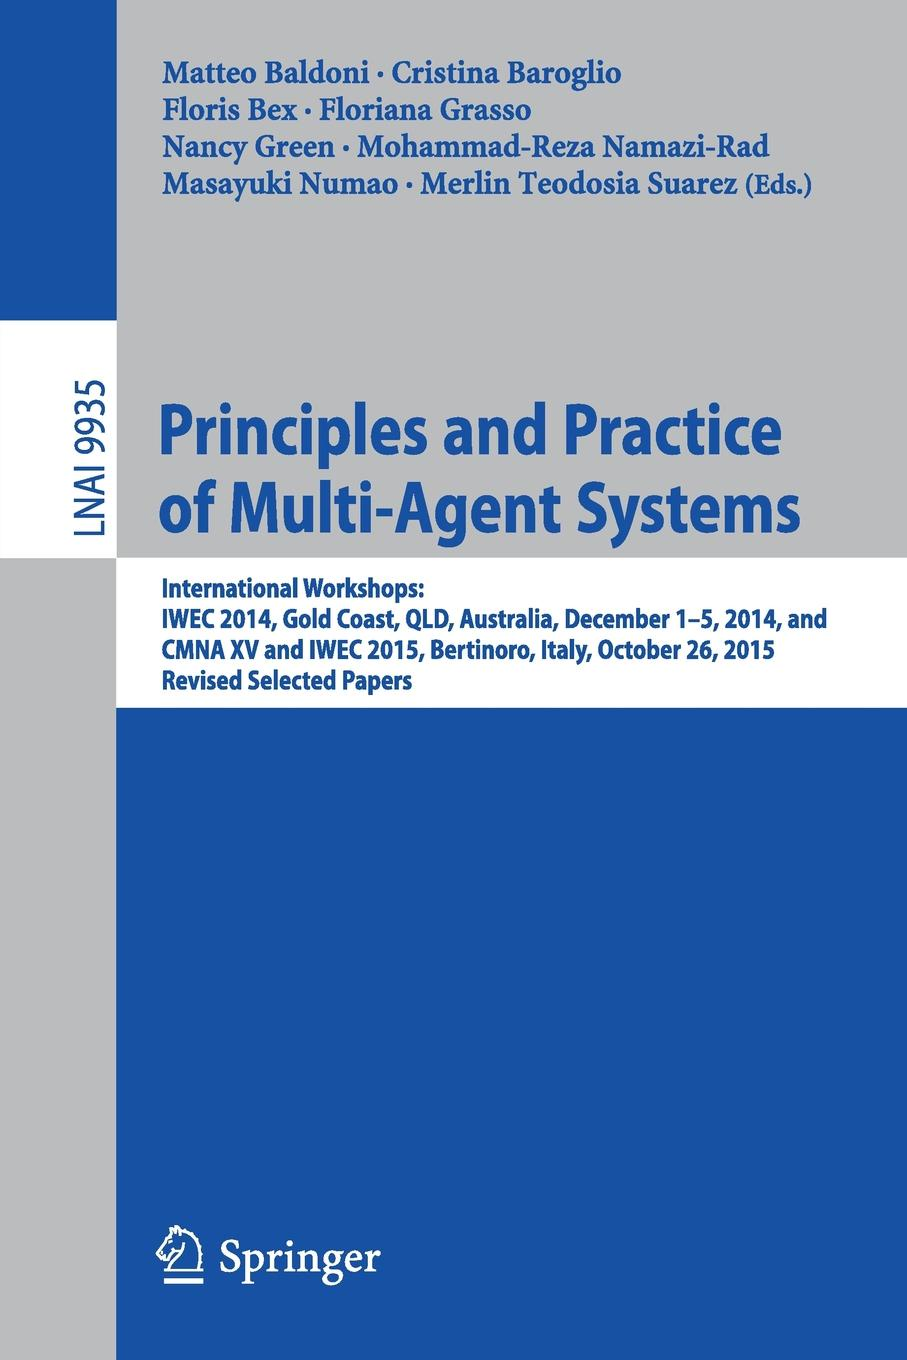 Principles and Practice of Multi-Agent Systems. International Workshops: IWEC 2014, Gold Coast, QLD, Australia, December 1-5, 2014, and CMNA XV and IWEC 2015, Bertinoro, Italy, October 26, 2015, Revised Selected Papers 2015 2015 2014 page 5